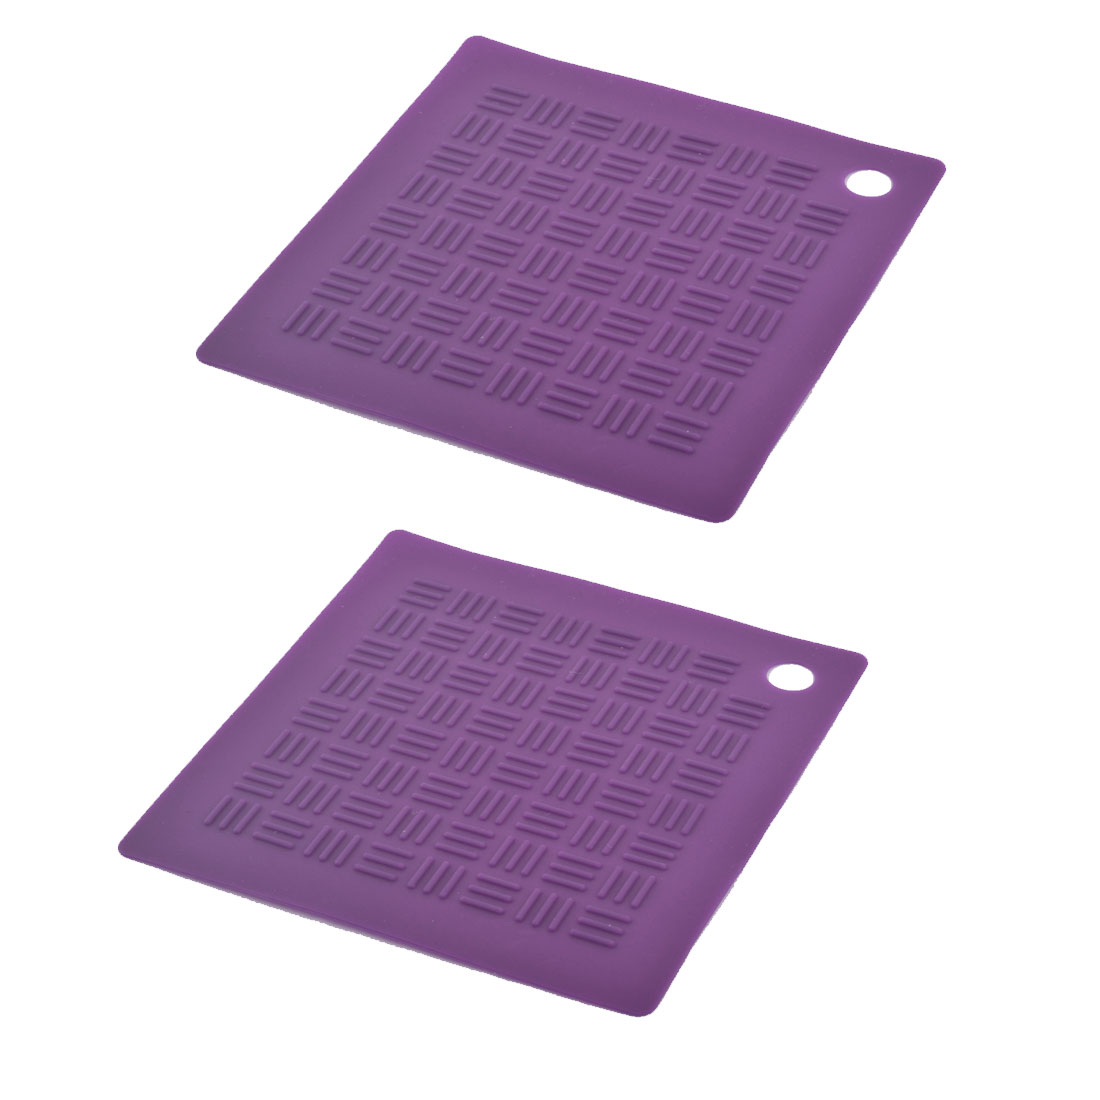 Silicone Square Nonslip Heat Resistant Mat Coaster Cushion Placemat Pad 2pcs